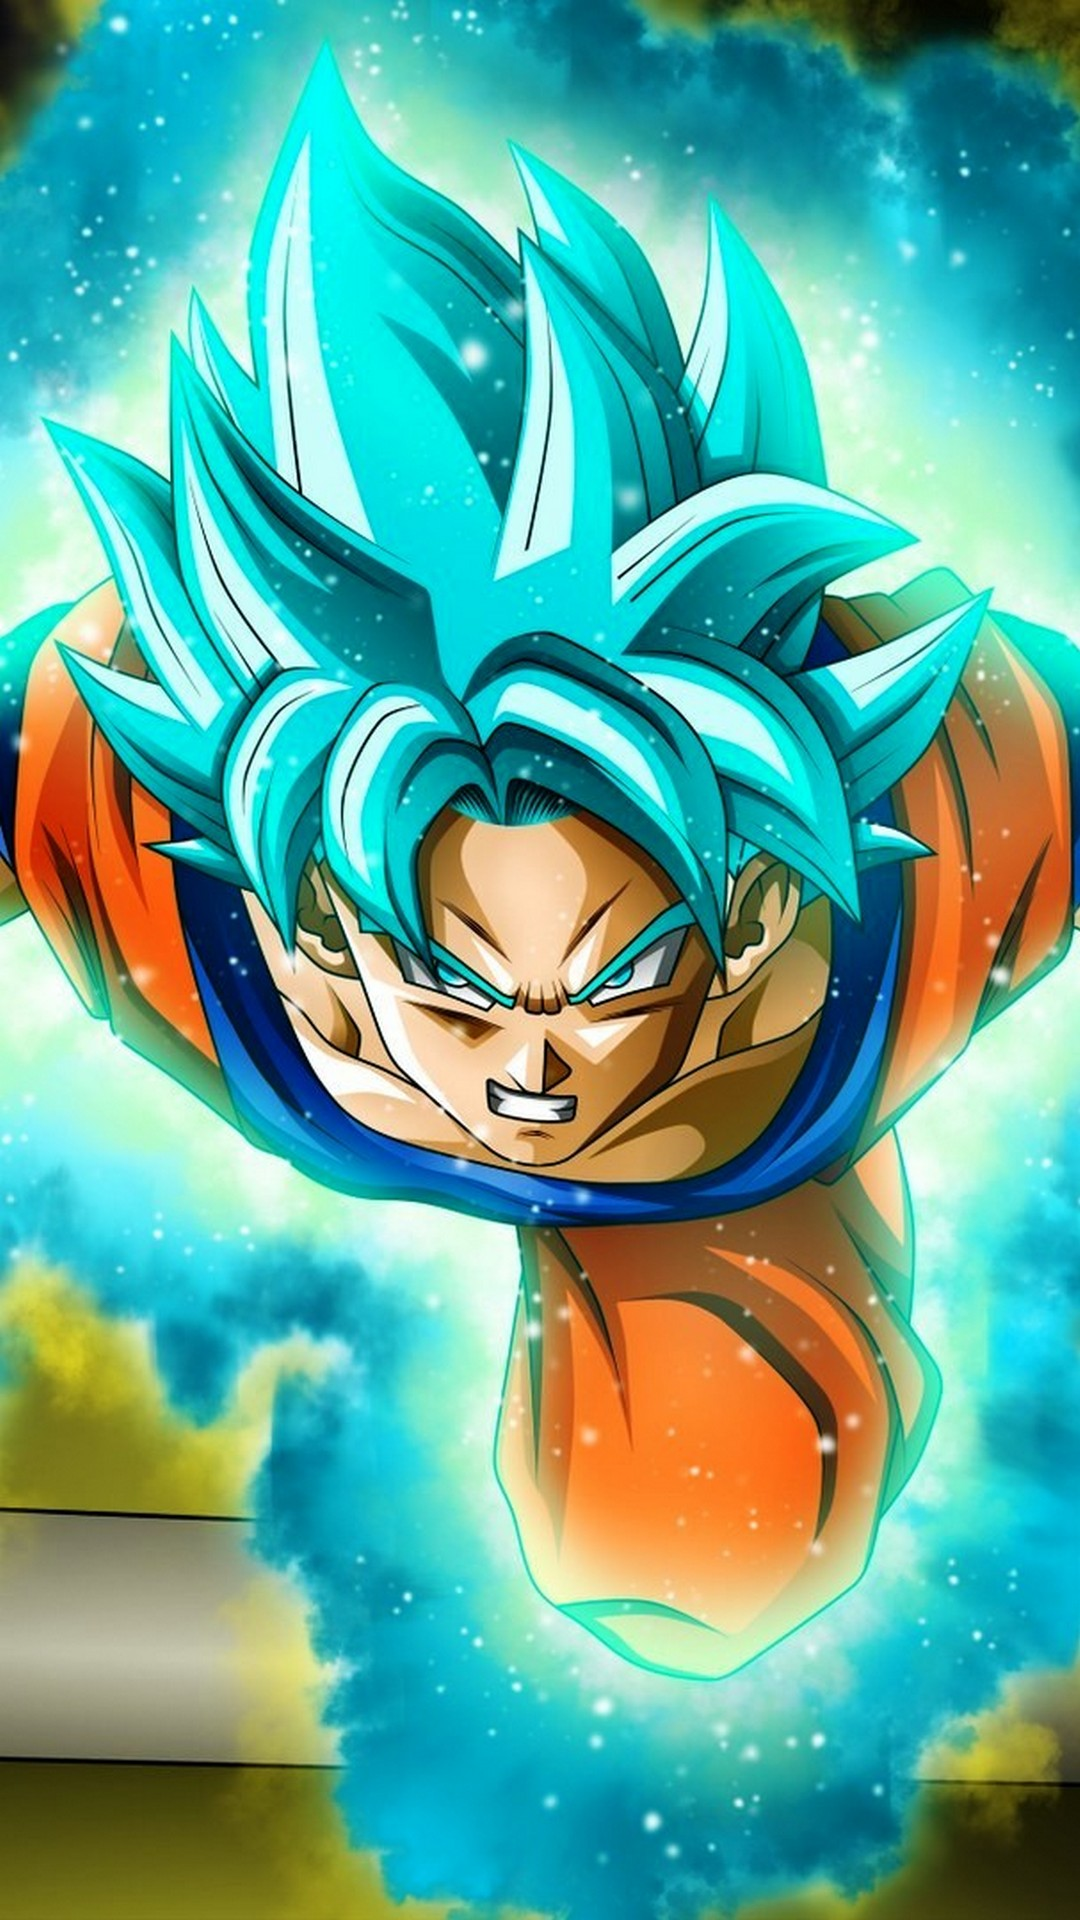 Dbz Wallpaper Iphone 6 Goku Ssj Wallpaper Android 2019 Android Wallpapers